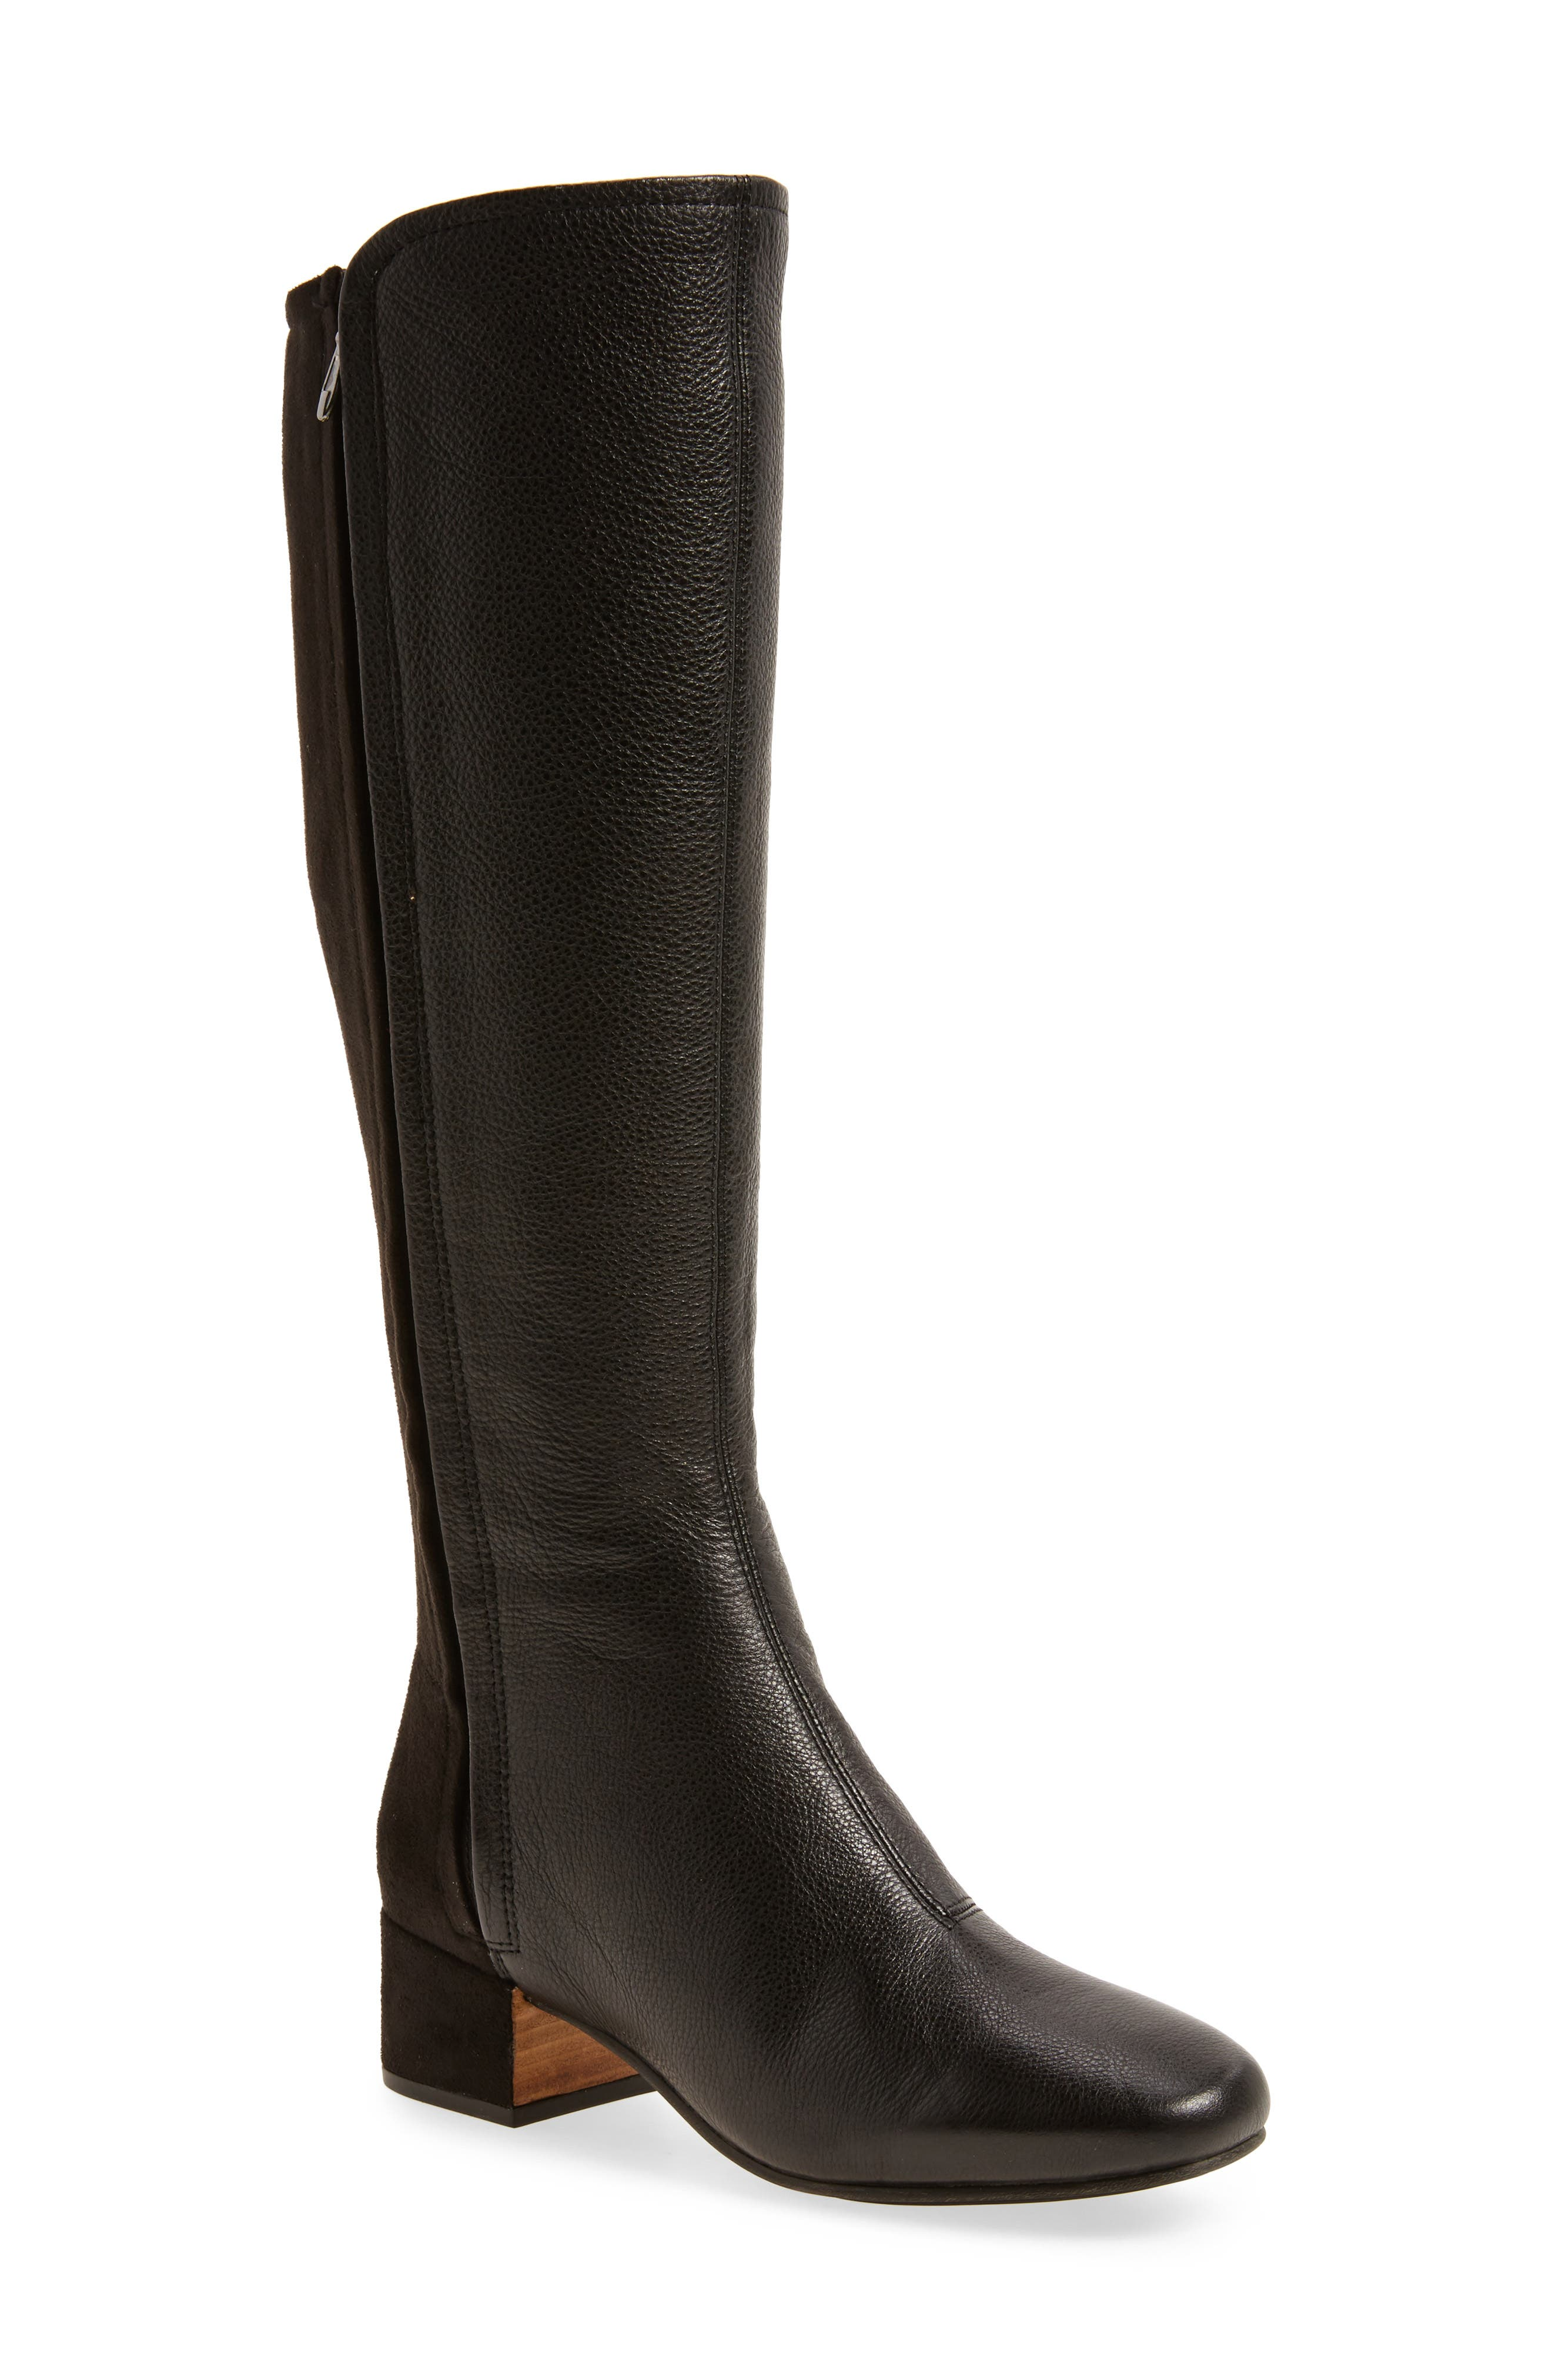 GENTLE SOULS BY KENNETH COLE Ella-Seti Knee High Boot, Main, color, 001